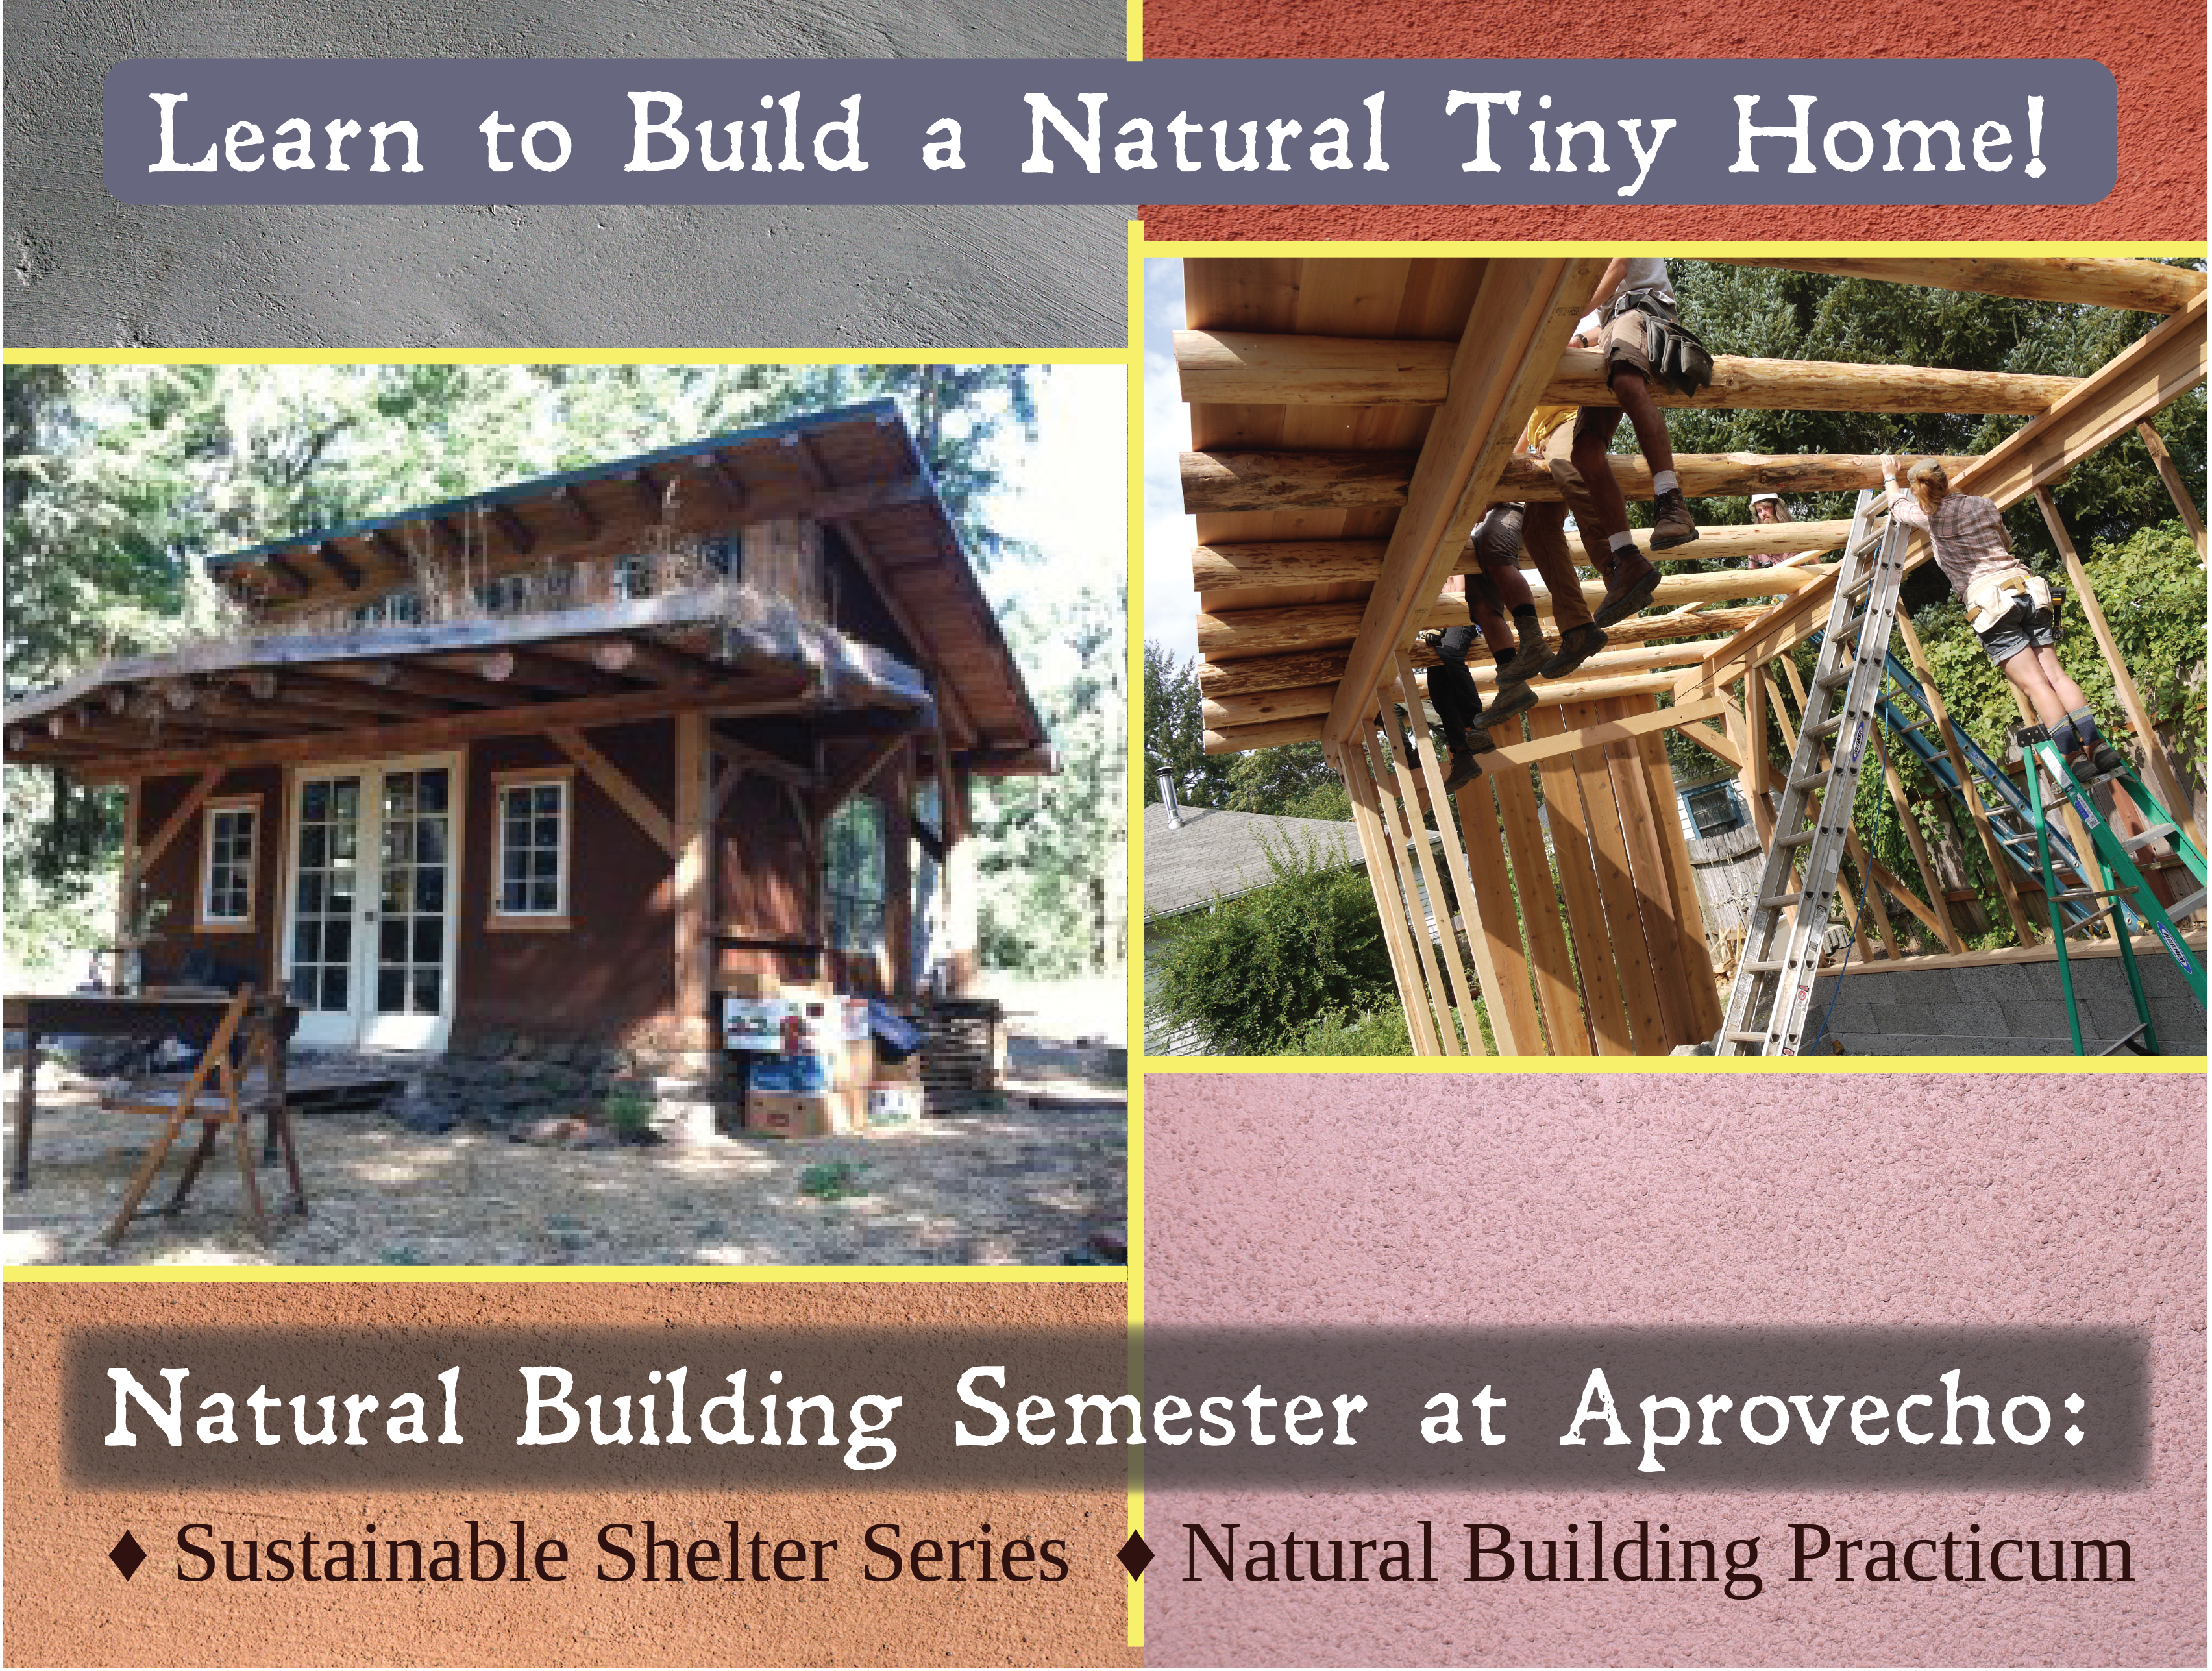 Learn how to build a tiny home from natural and sustainable materials! Topics include: foundations, timber framing, light straw clay insulation, strawbale insulation, natural plasters, round pole framing and light framing, design build projects, earthen floors, and so much more!